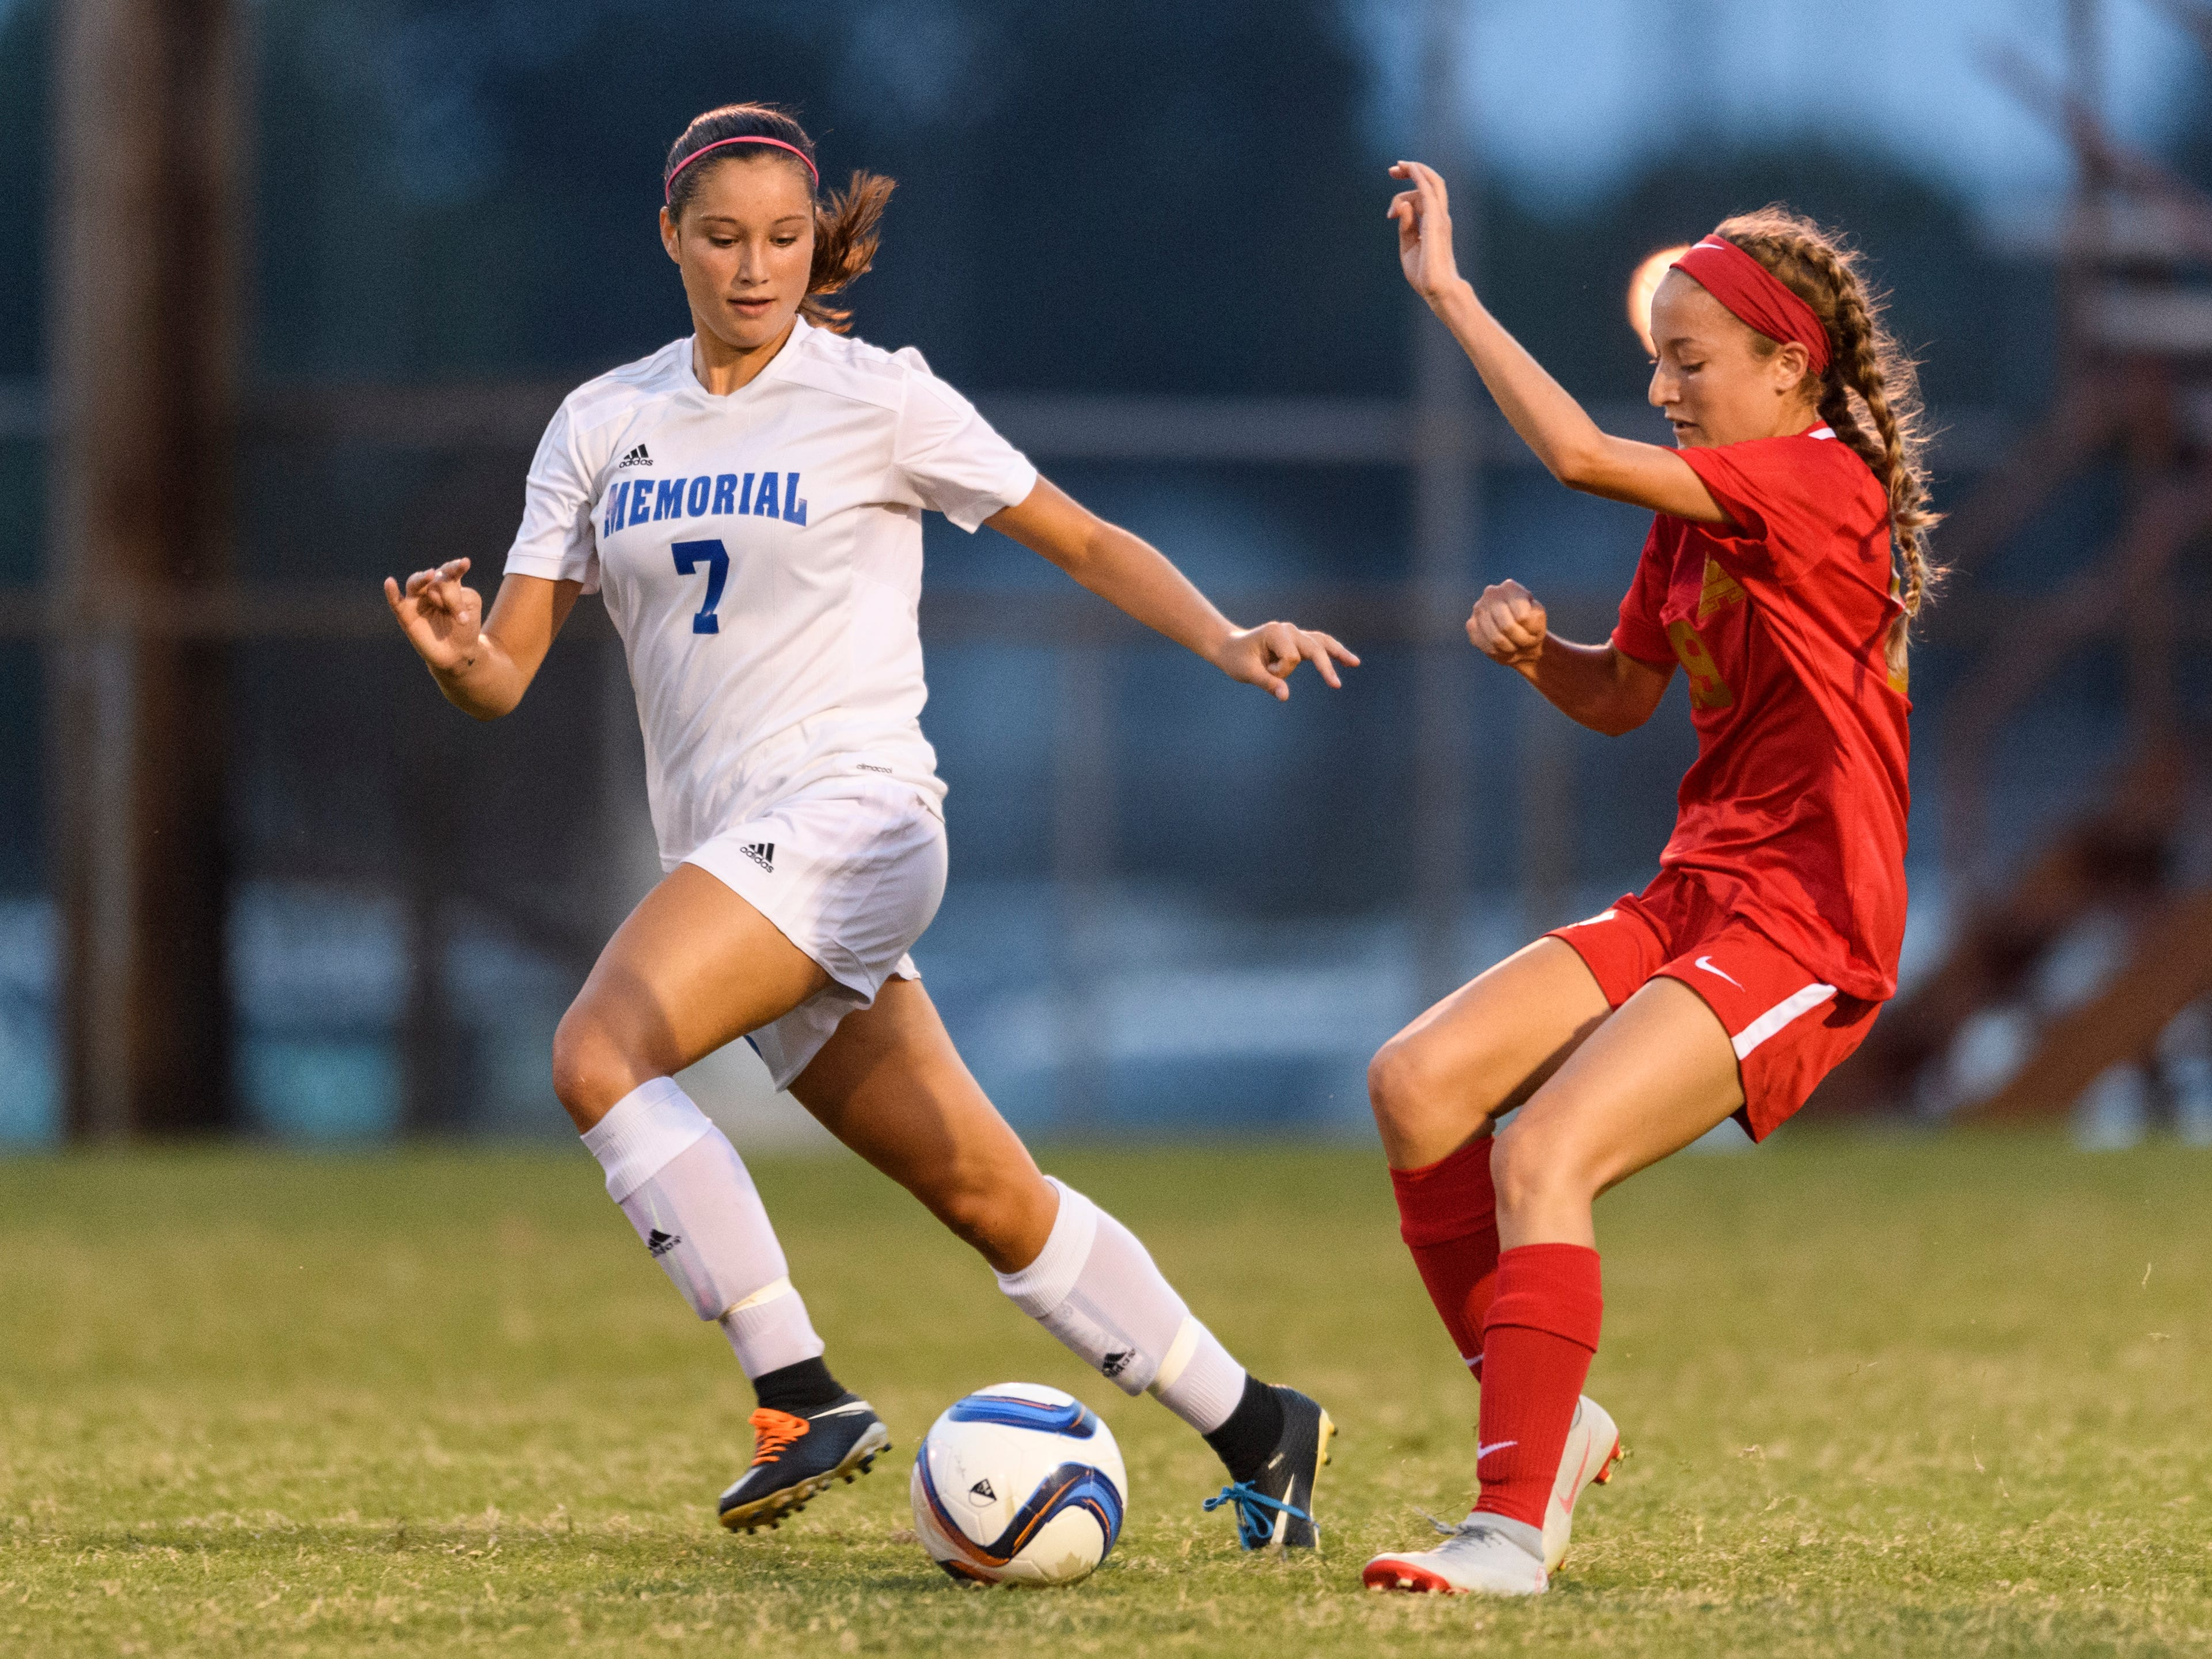 Memorial's Mallory Wittmer (7) attempts to make a steal from Mater Dei's Miranda Nosko (19) during the match up at the EVSC Soccer Fields in Evansville, Ind., Monday, Aug. 20, 2018. The Tigers defeated the Wildcats 4-0.